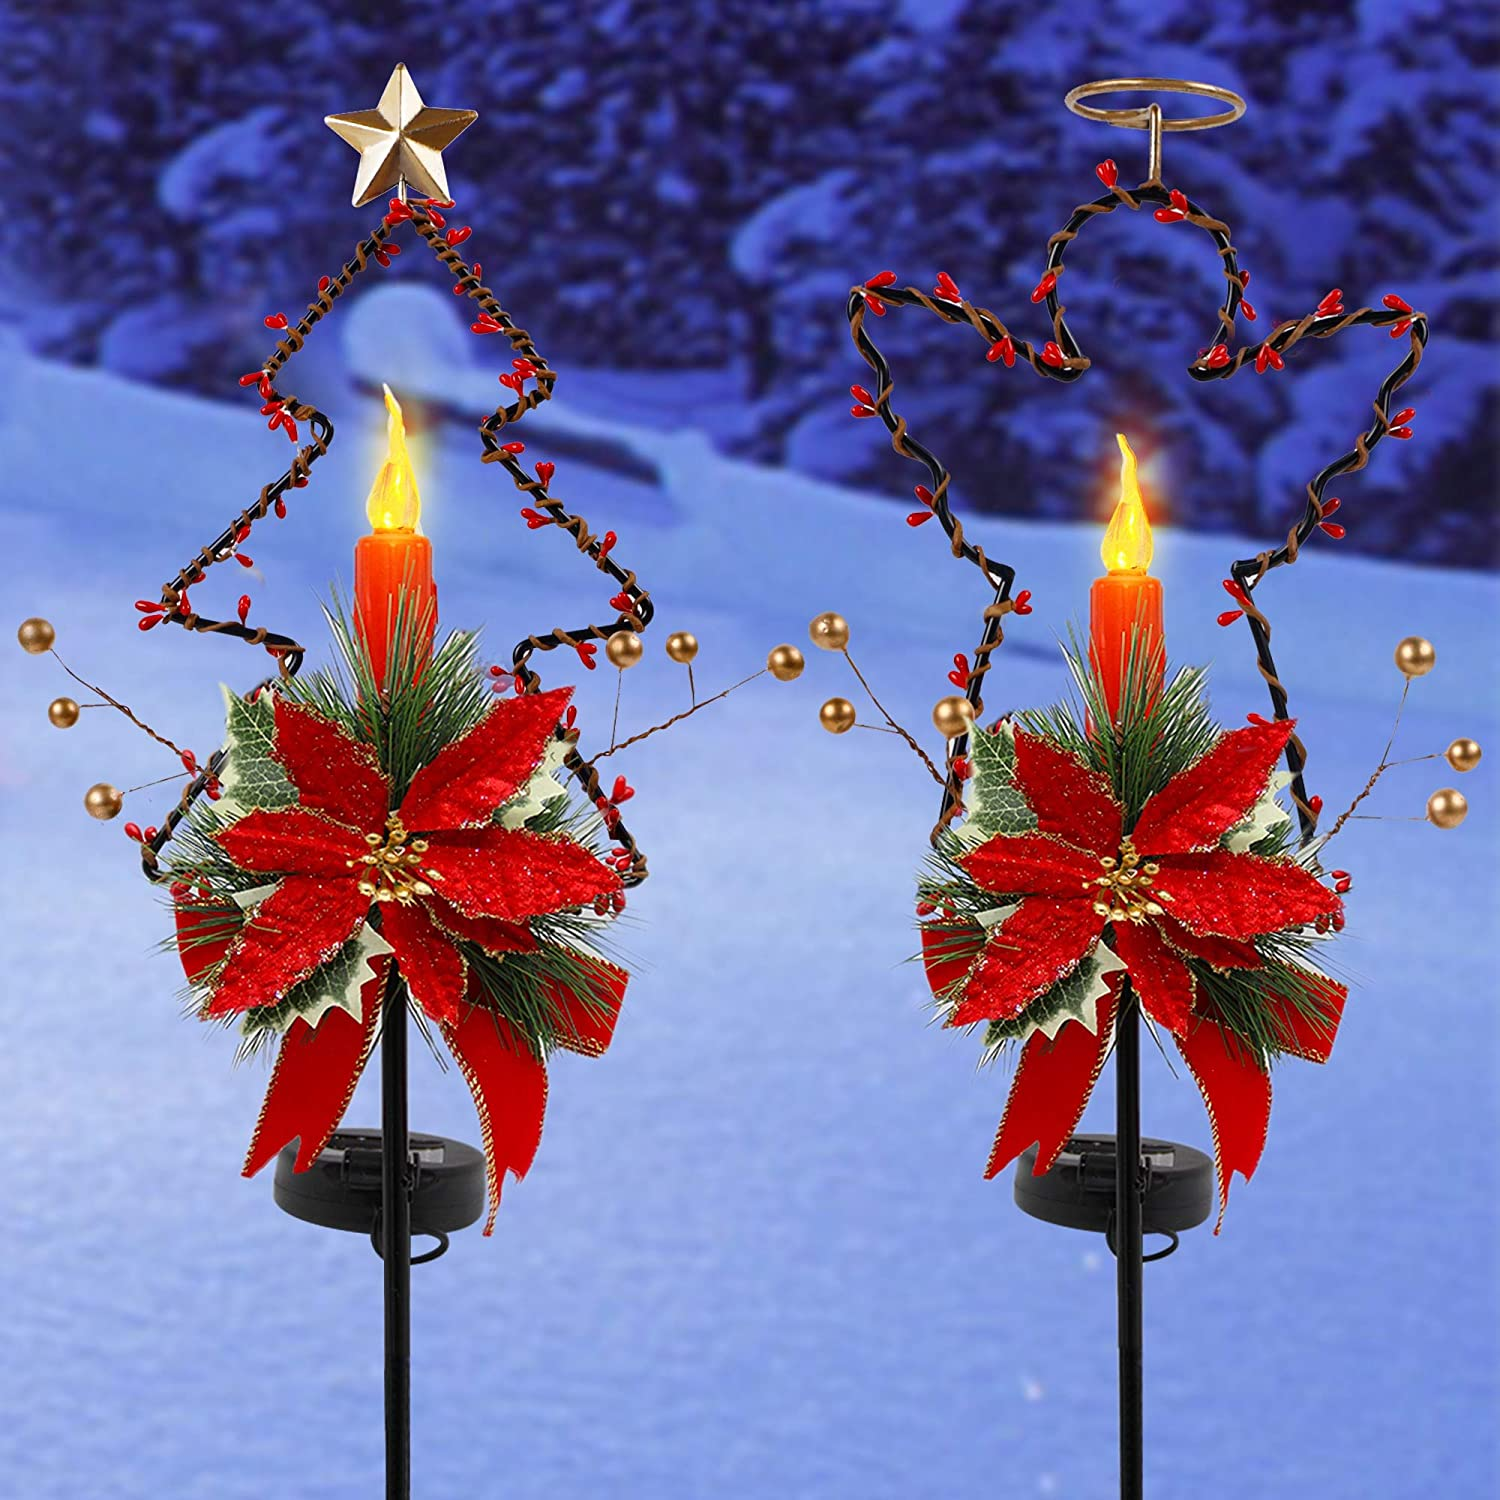 GUOOU Solar Christmas Yard Decorations, Outdoor LED Solar Powered Candle Xmas Pathway Lights, Metal Solar Garden Stake Lights, Angel Christmas Tree Lawn Yard Ornament, Set of 2